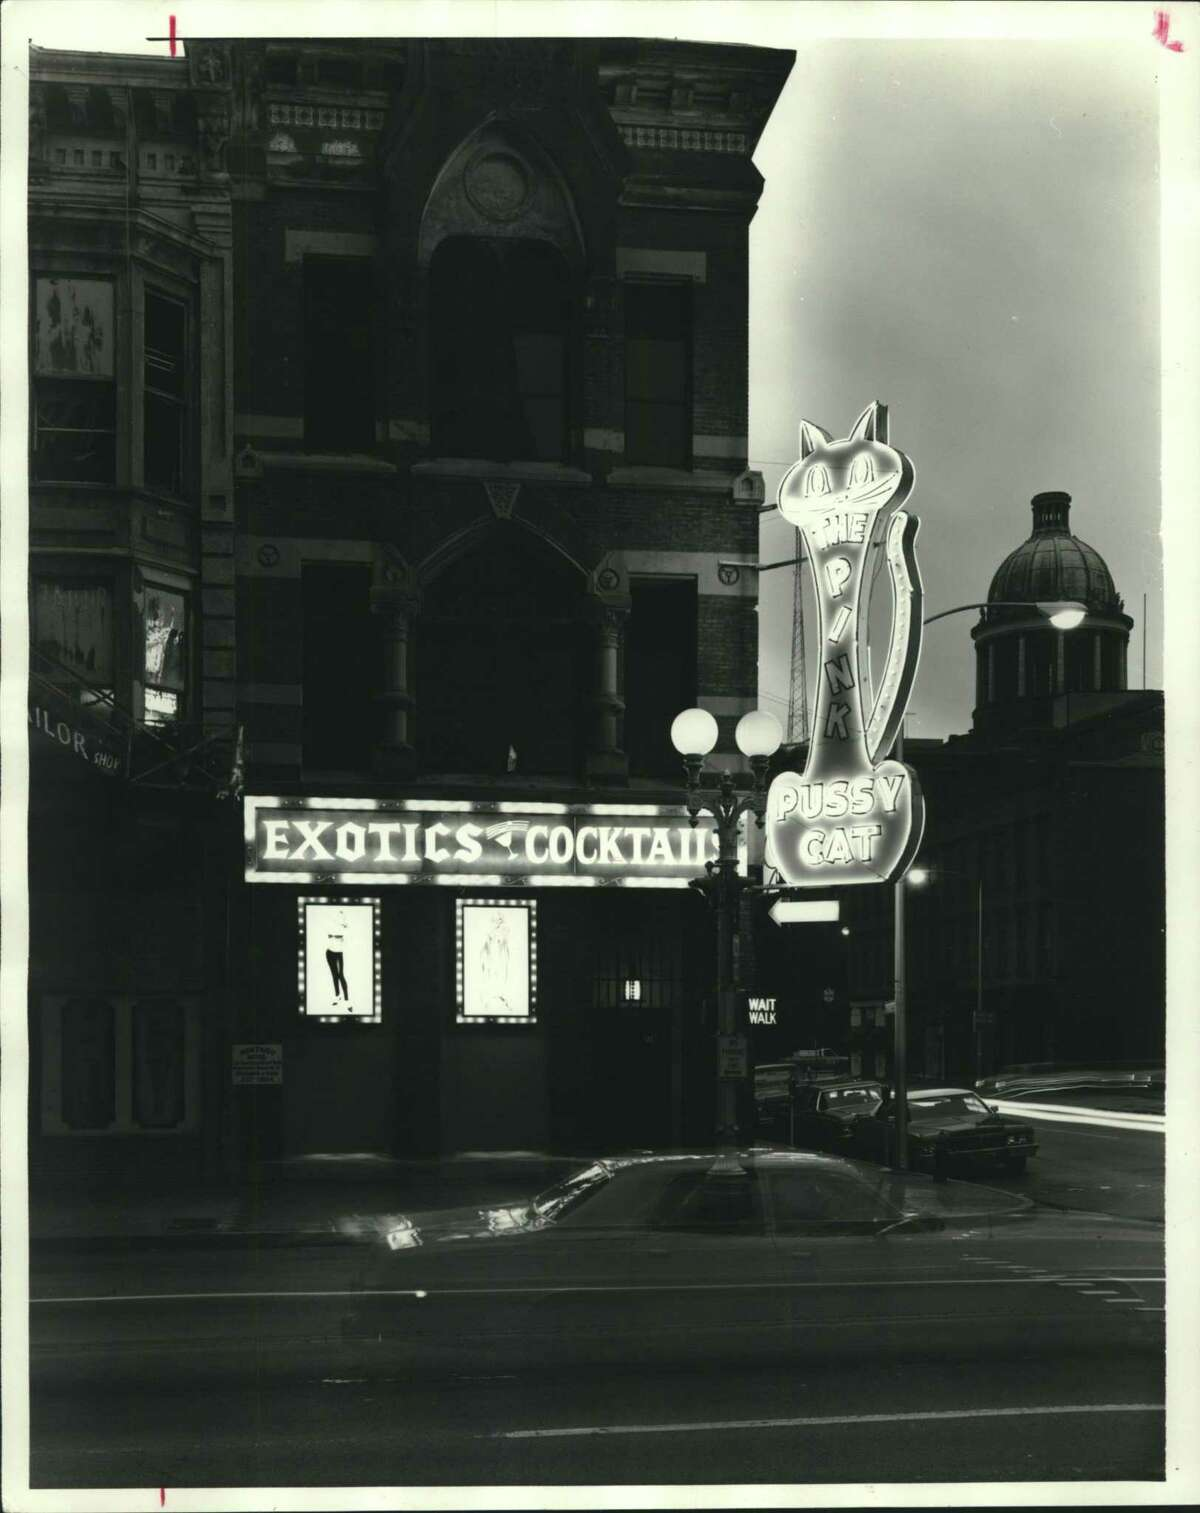 This iconic bright pink neon sign marks the Pink Pussy Cat lounge in Houston at the corner of Main and Congress avenues in 1979. The building was demolished in 1983.